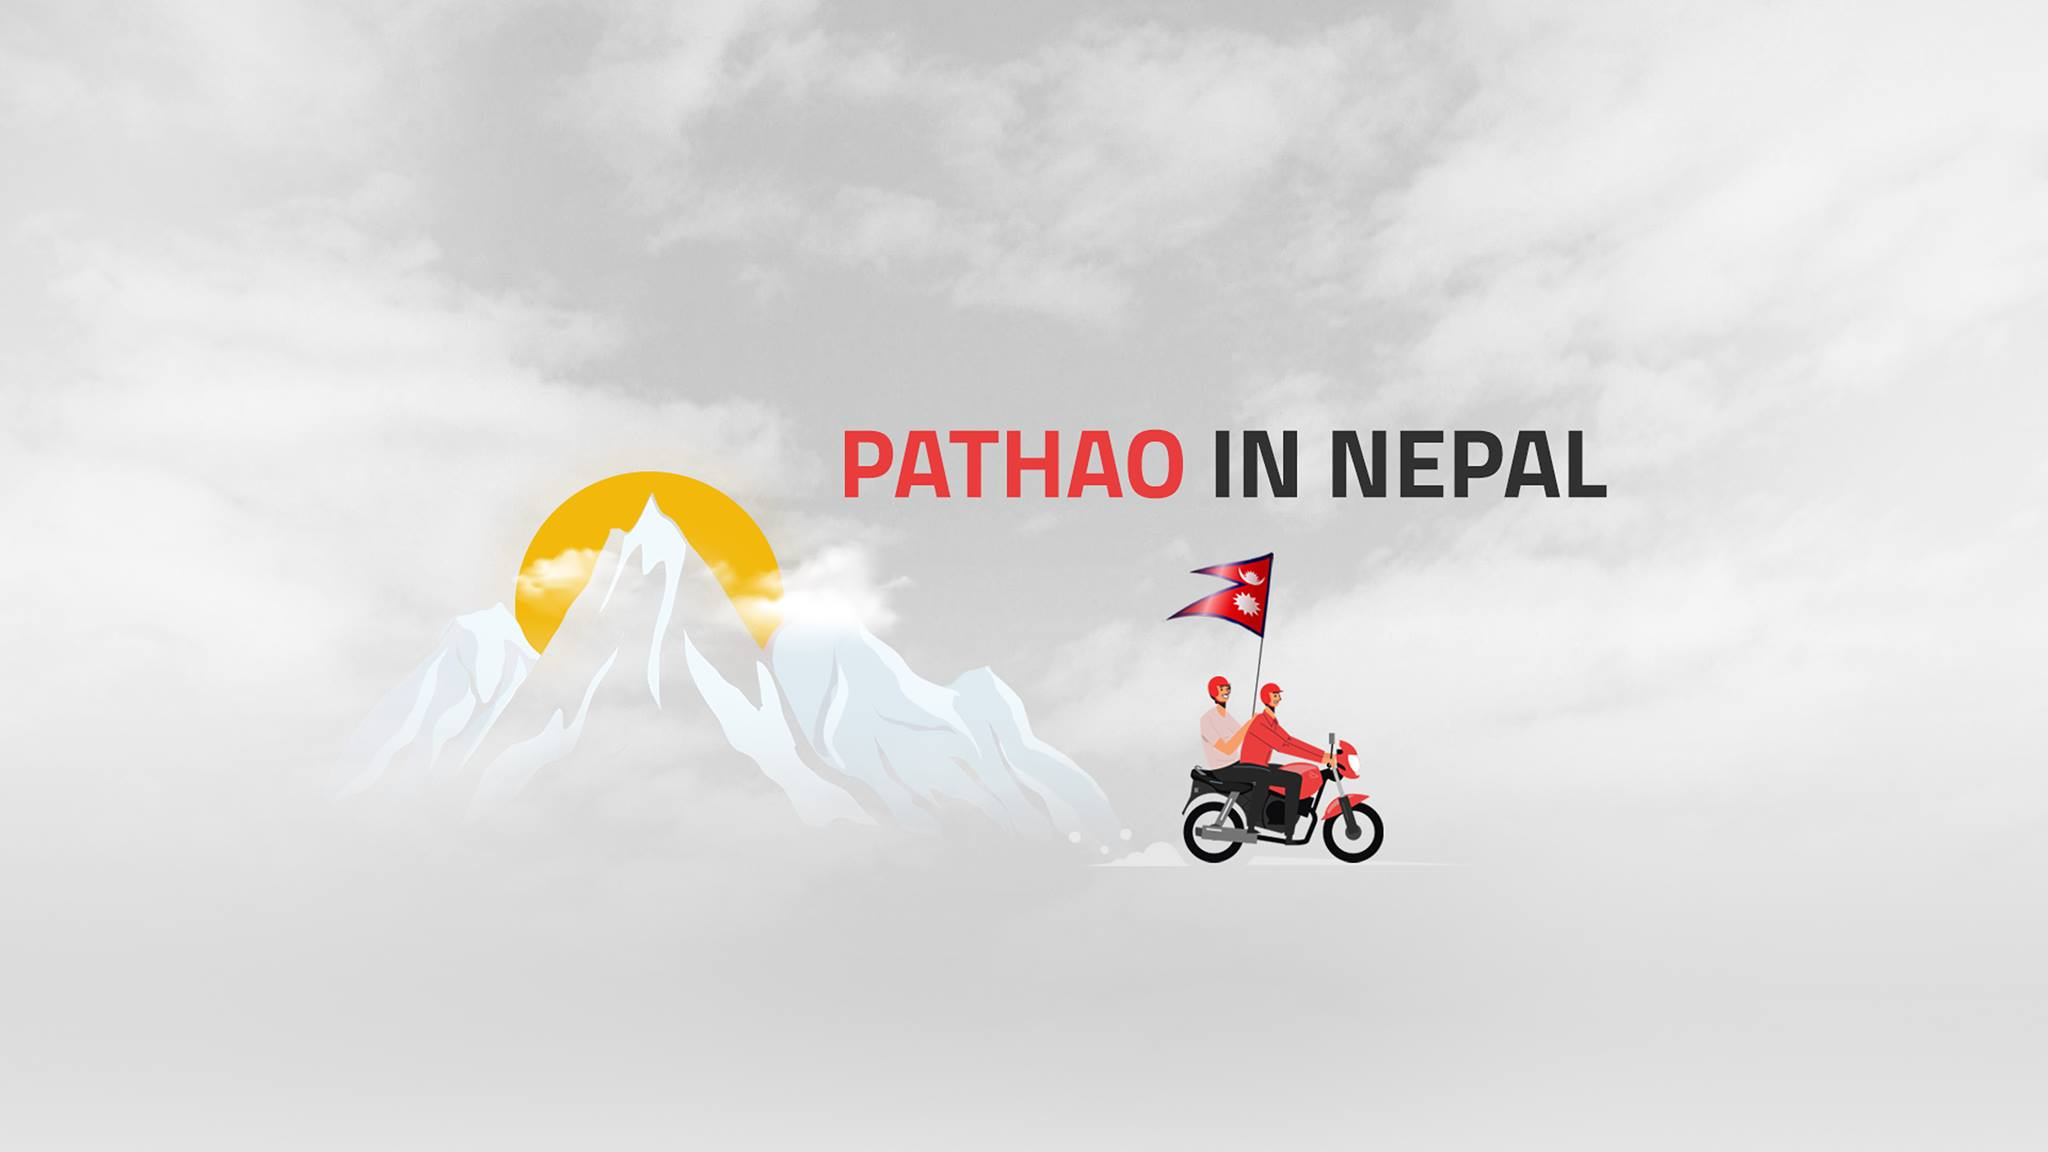 Pathao Case Study: It's All About Marketing